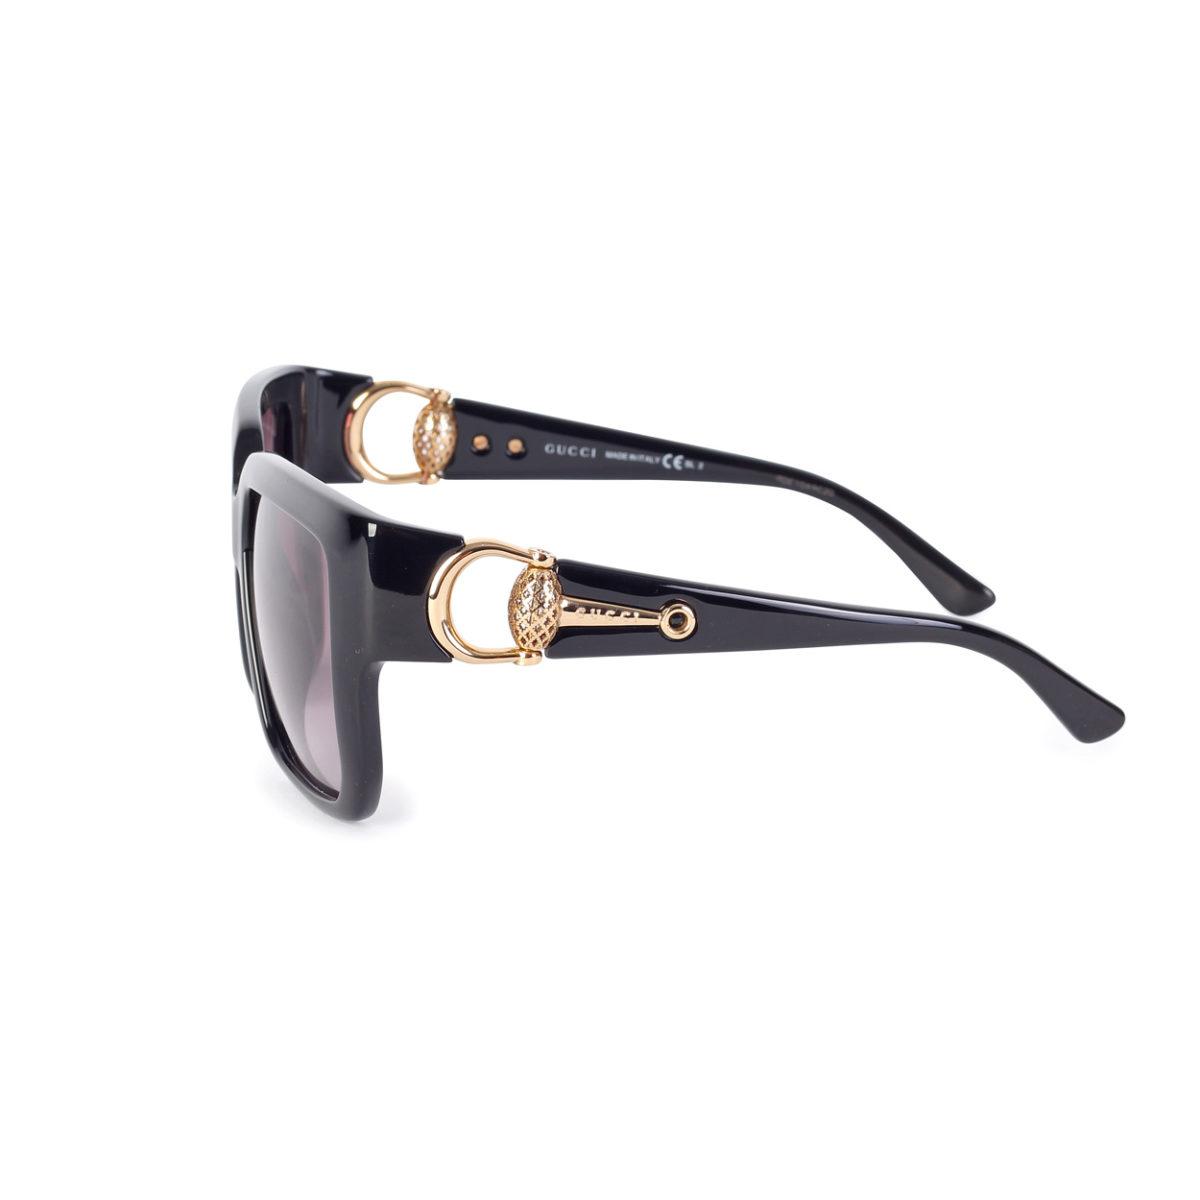 c668fc952 GUCCI Oversized Square-Frame Sunglasses – NEW | Luxity